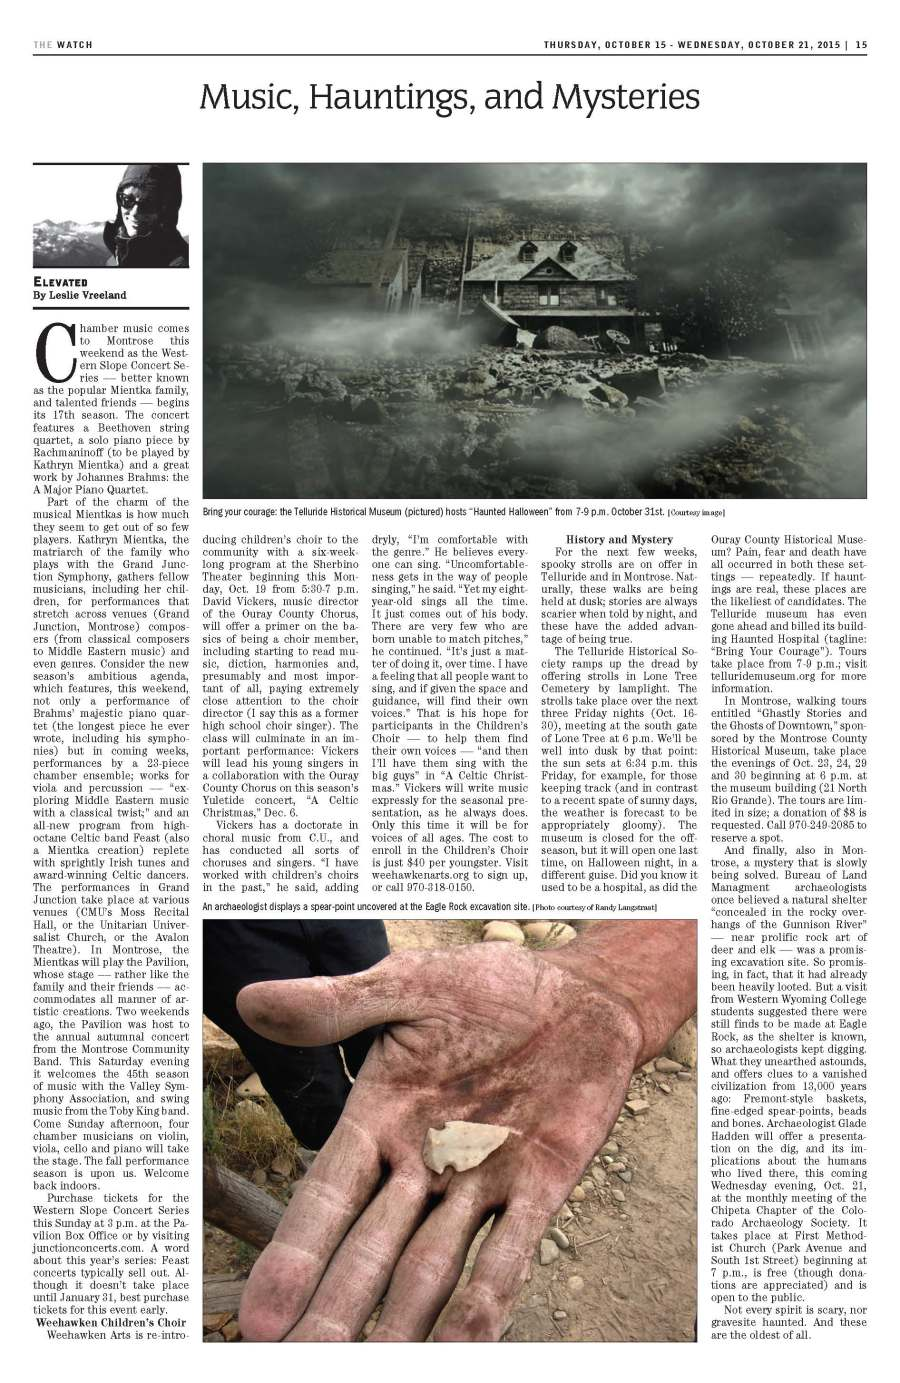 The Watch Article